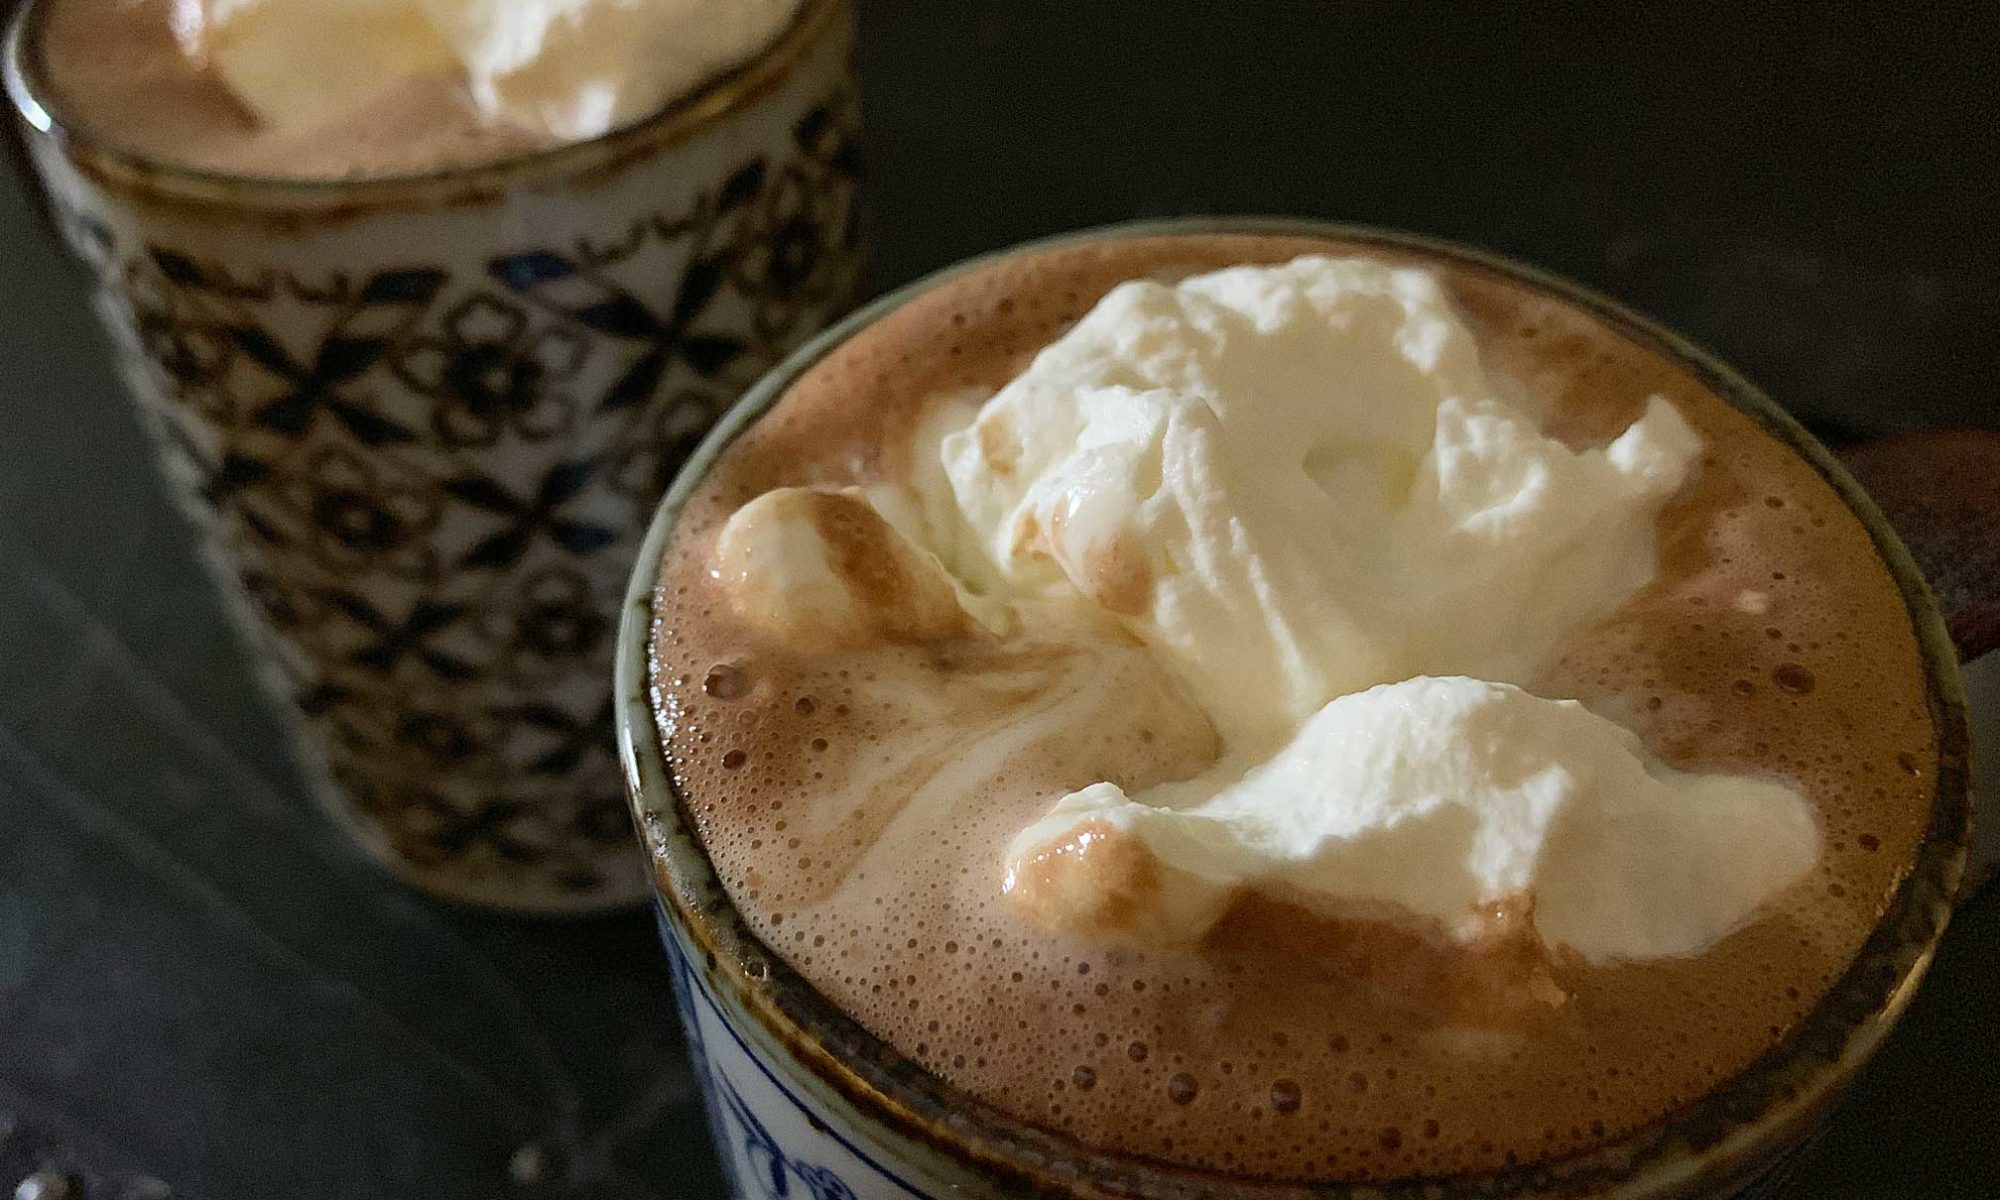 hot chocolate in mugs, topped with whipped cream